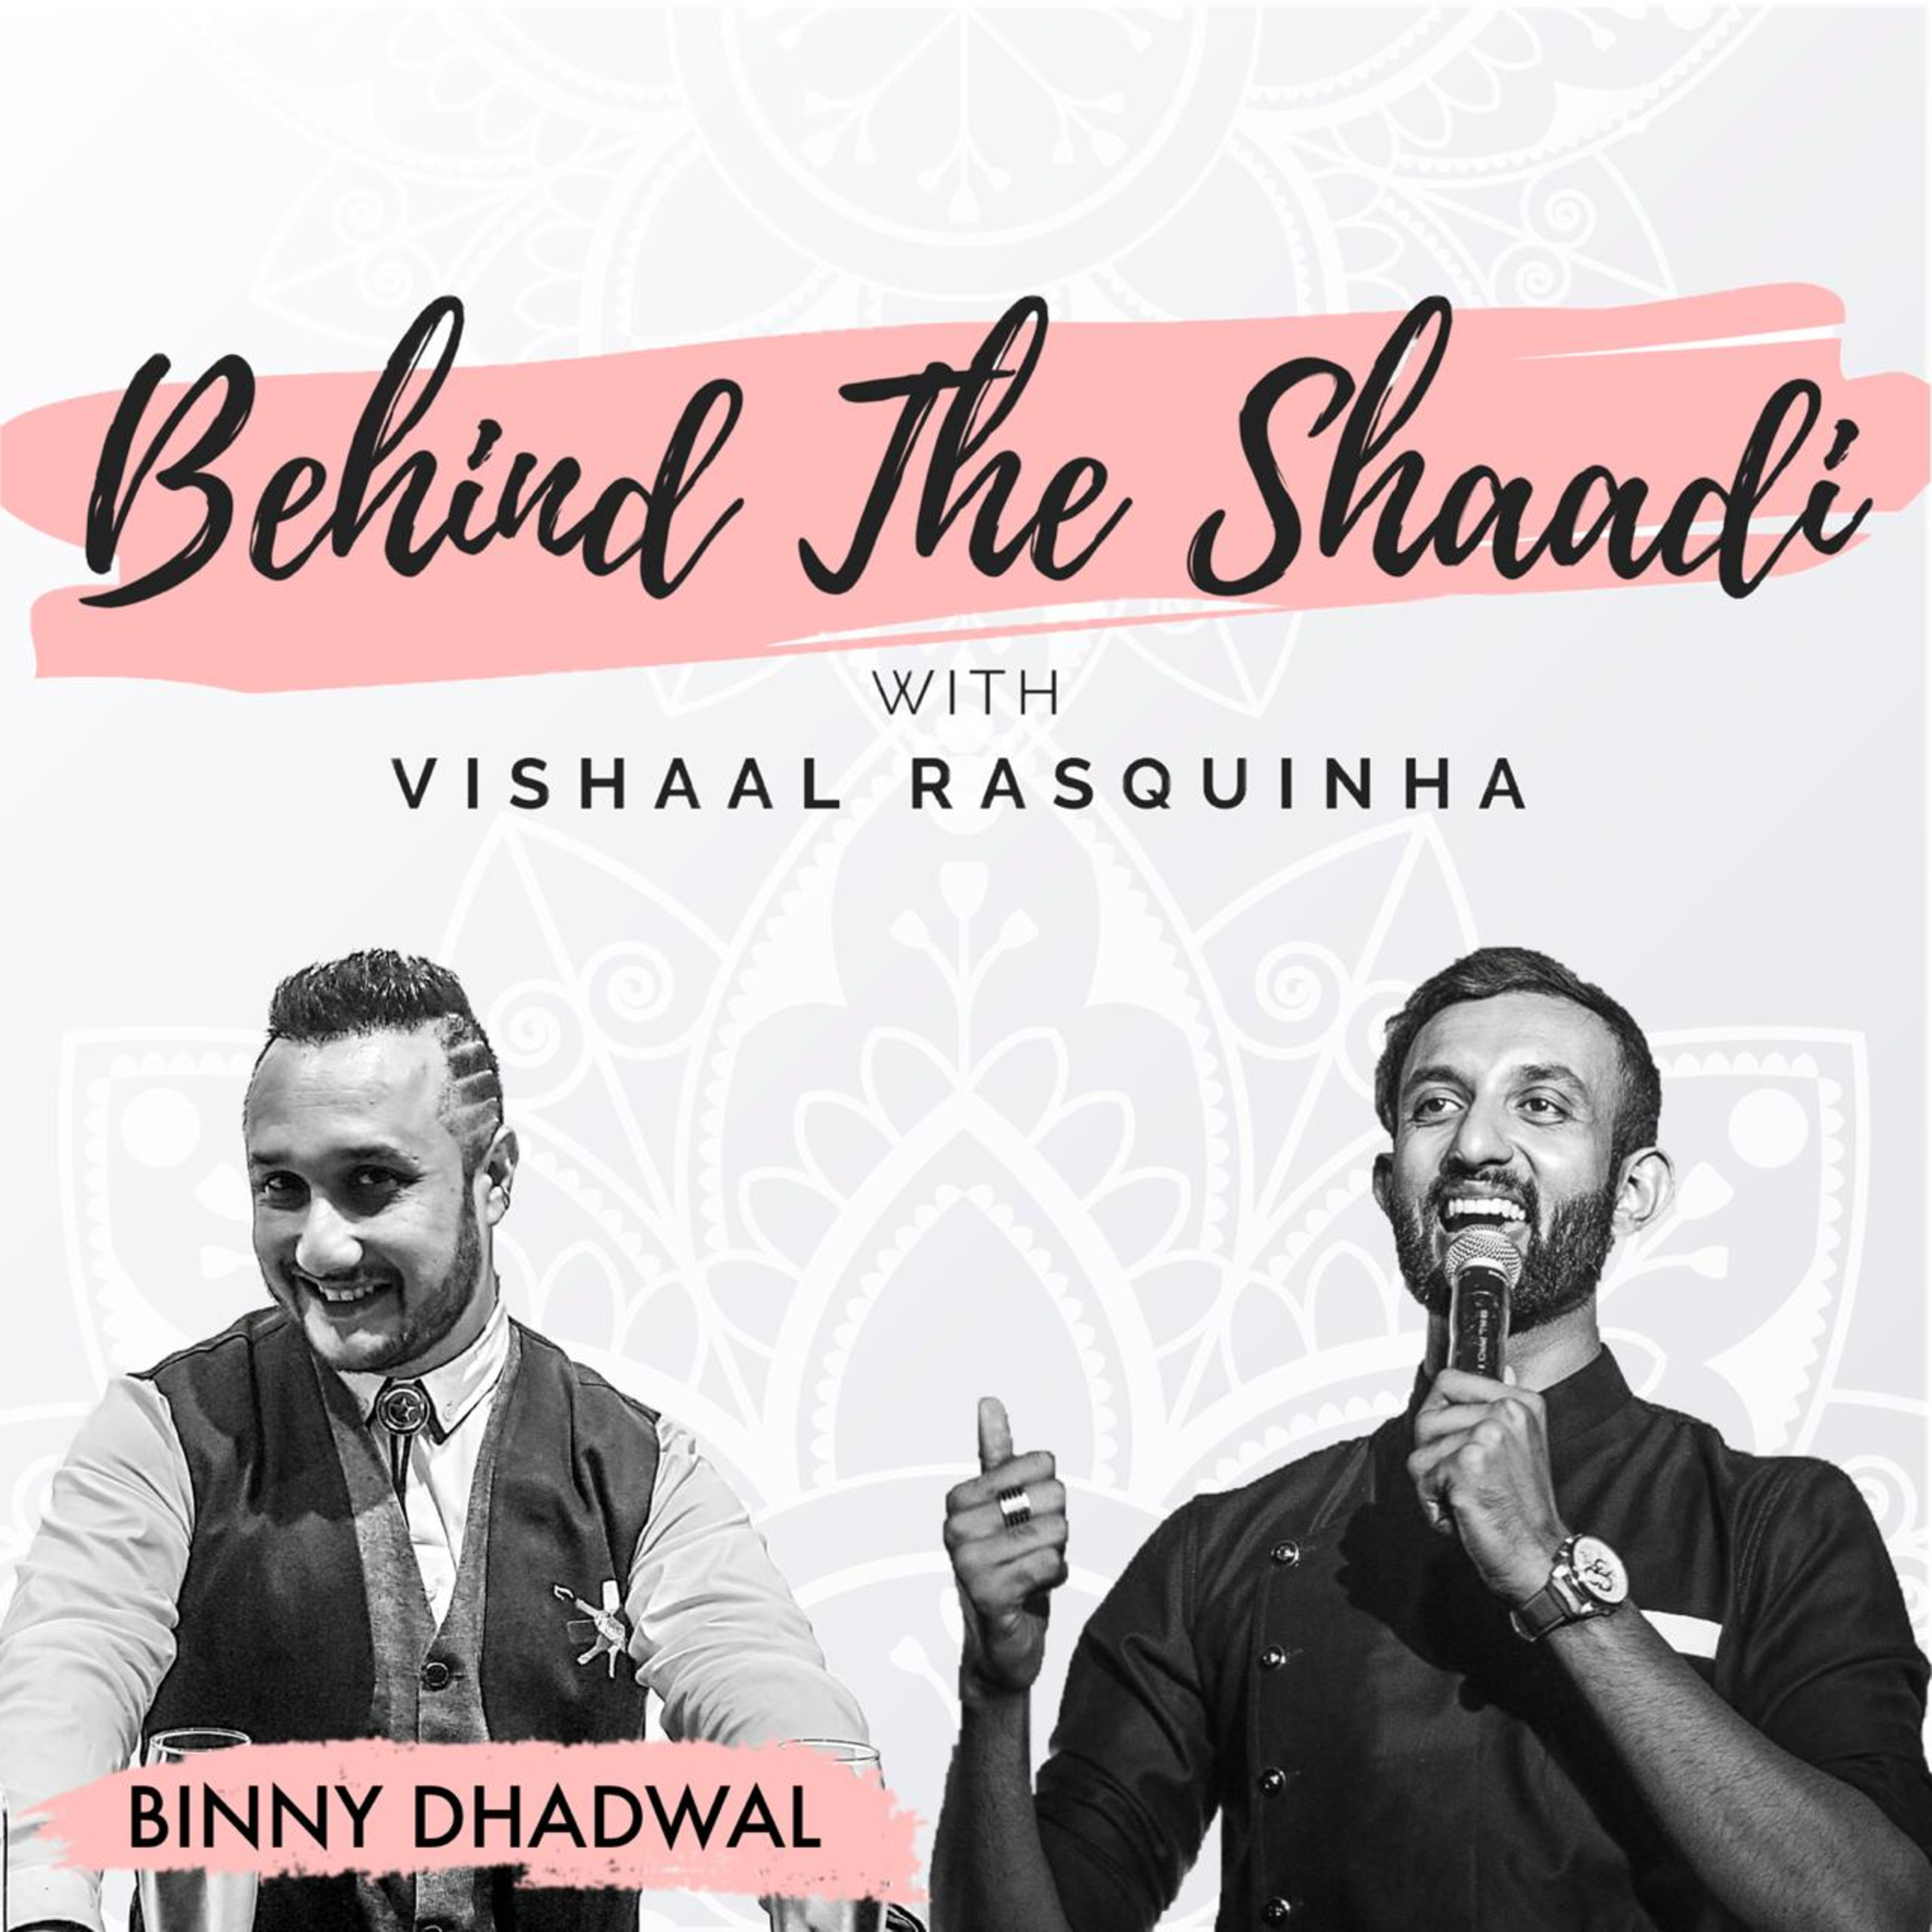 Binny Dhadwal: Raising the bar globally